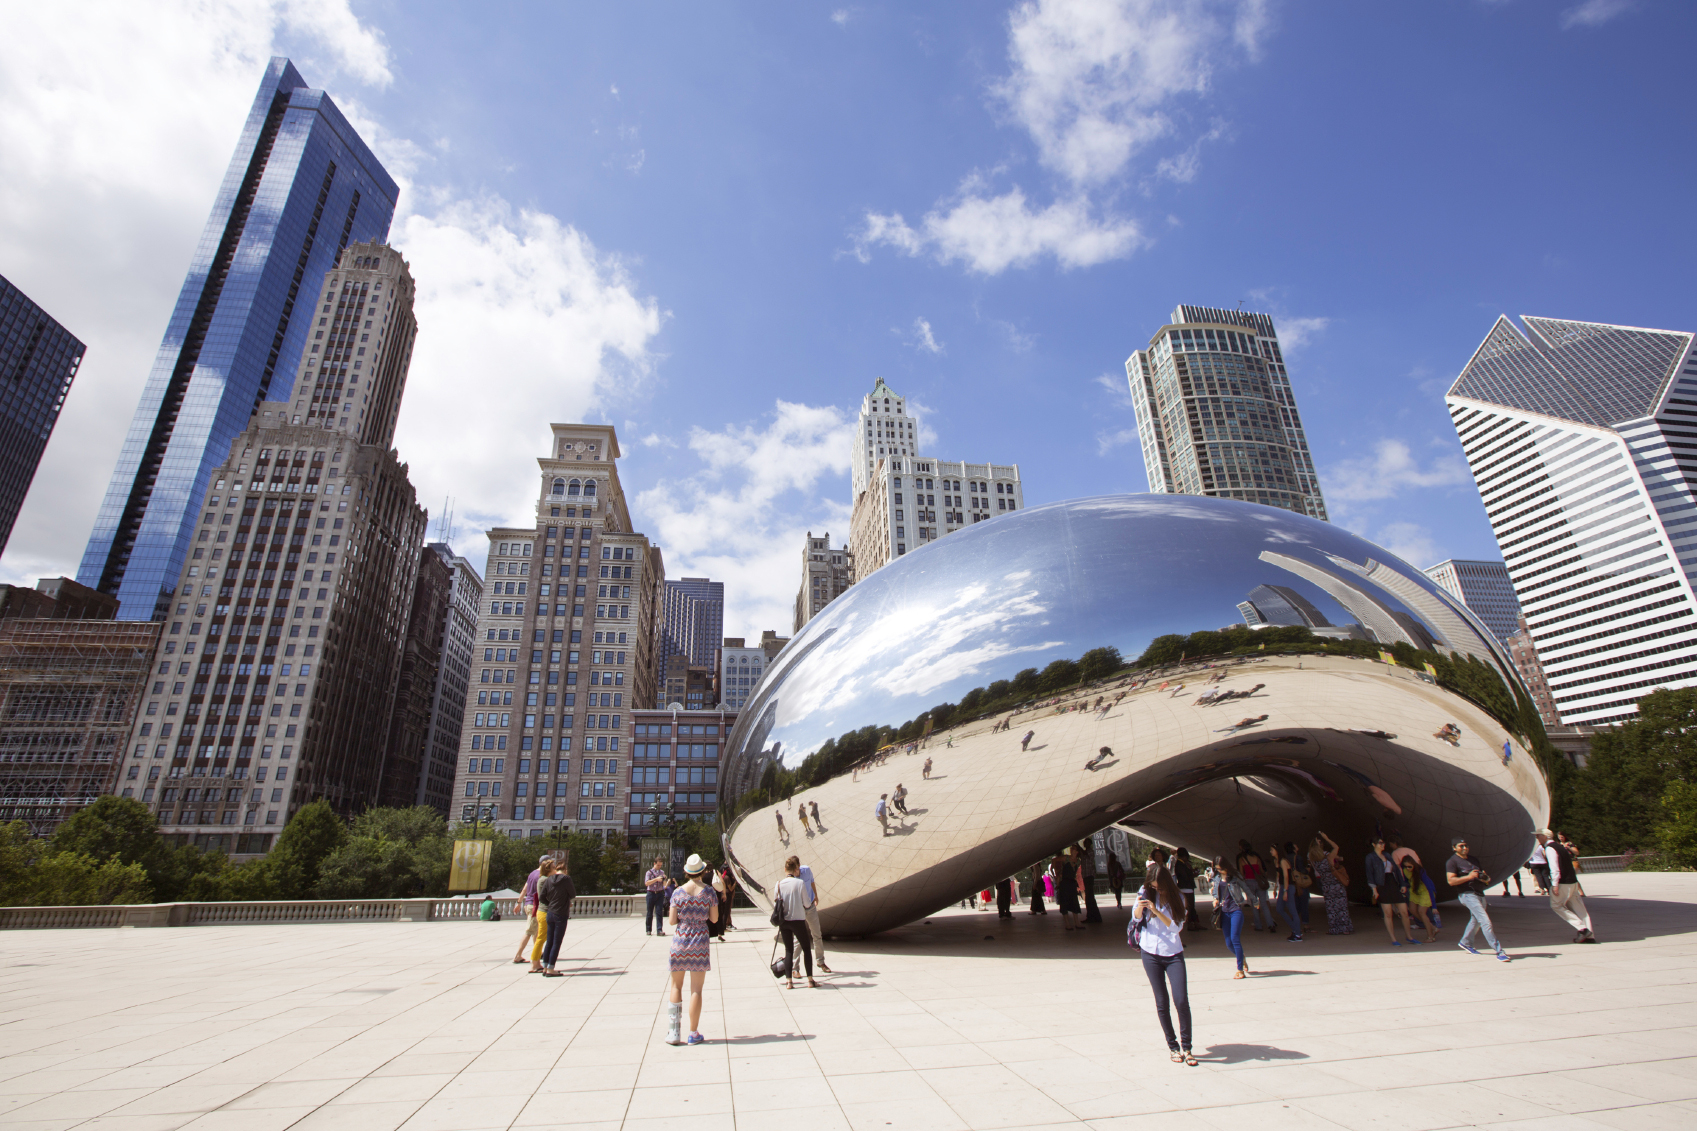 chicago-cloud-gate-27443845